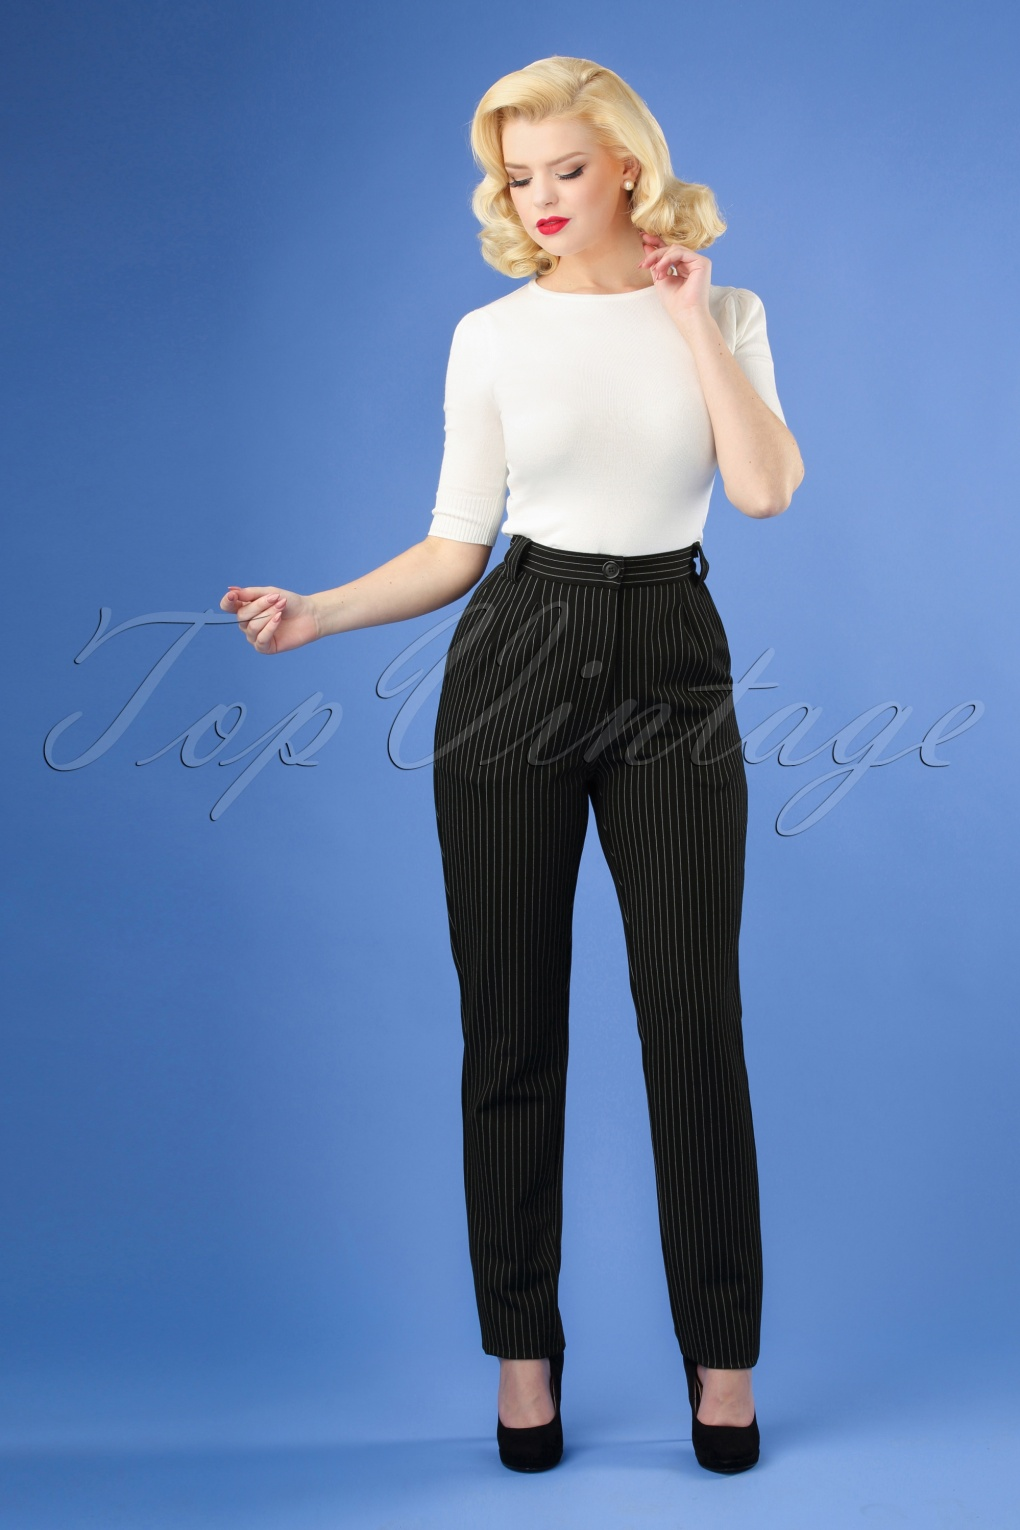 1960s Style Dresses, Clothing, Shoes UK 50s High Waist Classic Pinstripe Pants in Black £86.86 AT vintagedancer.com